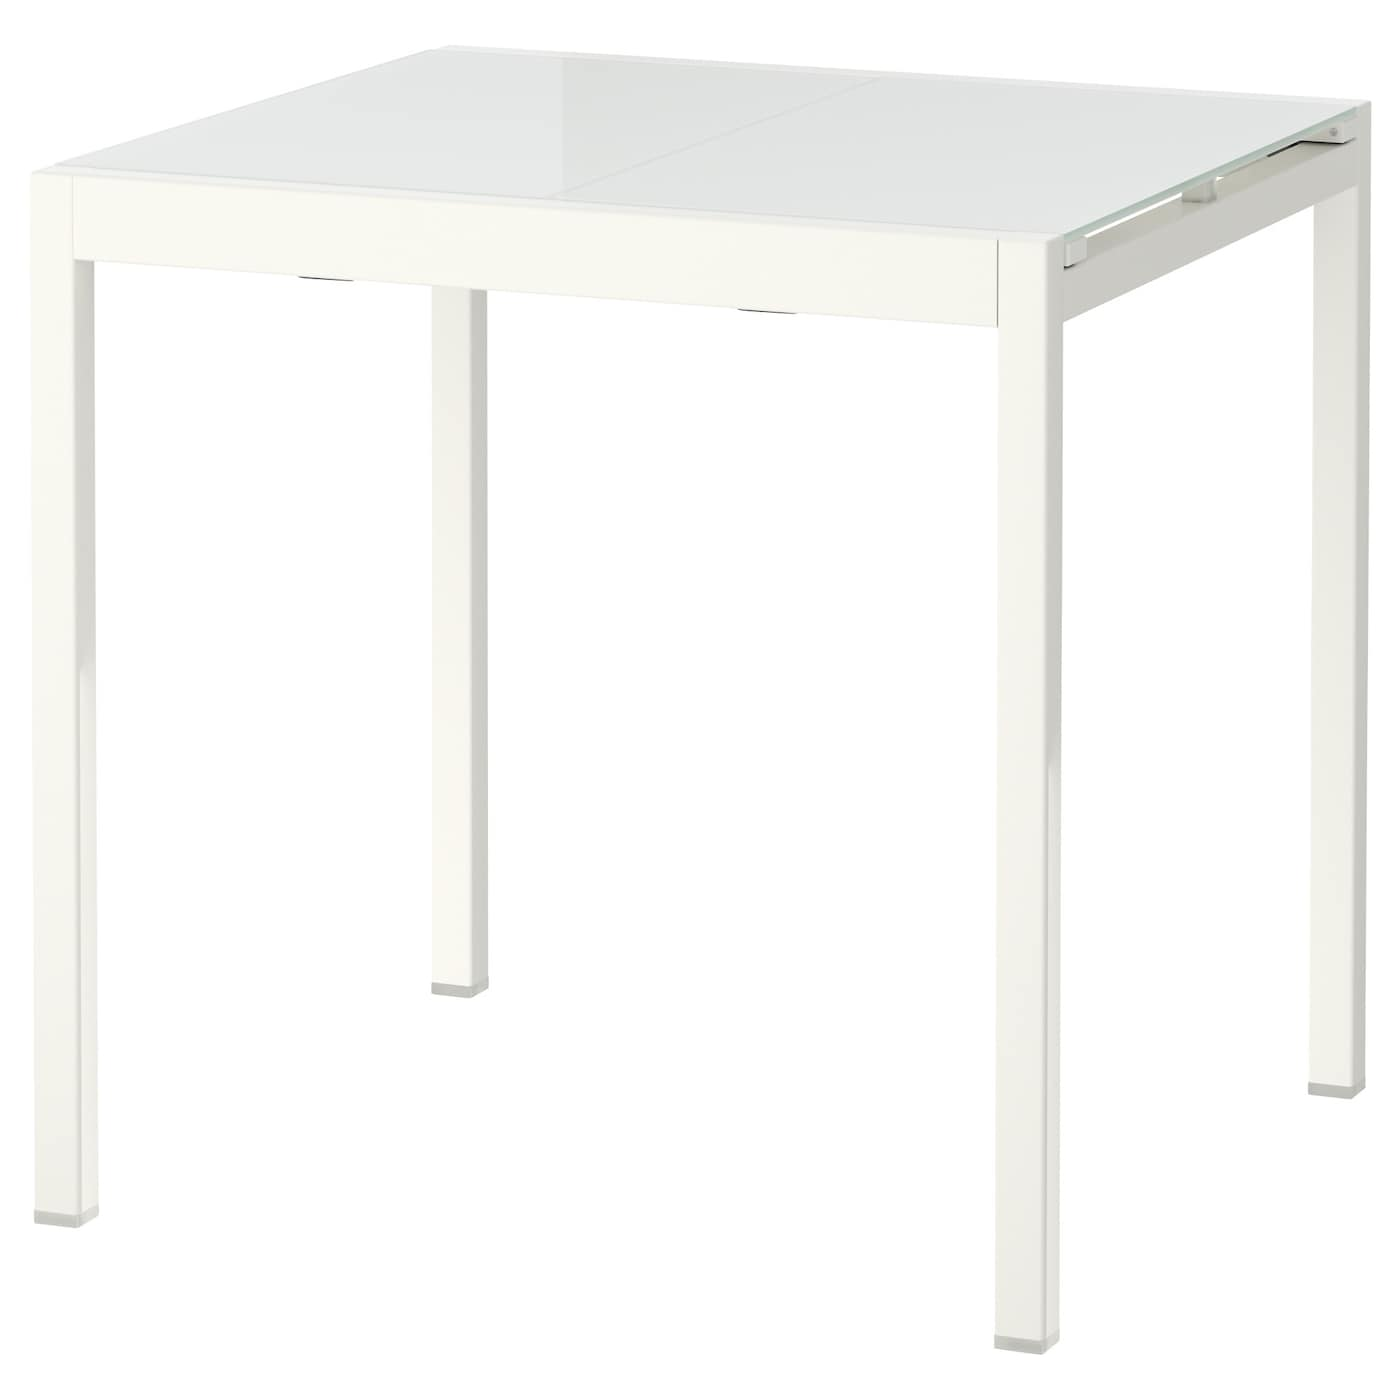 Glivarp extendable table white 75 115x70 cm ikea - Petite table extensible ...